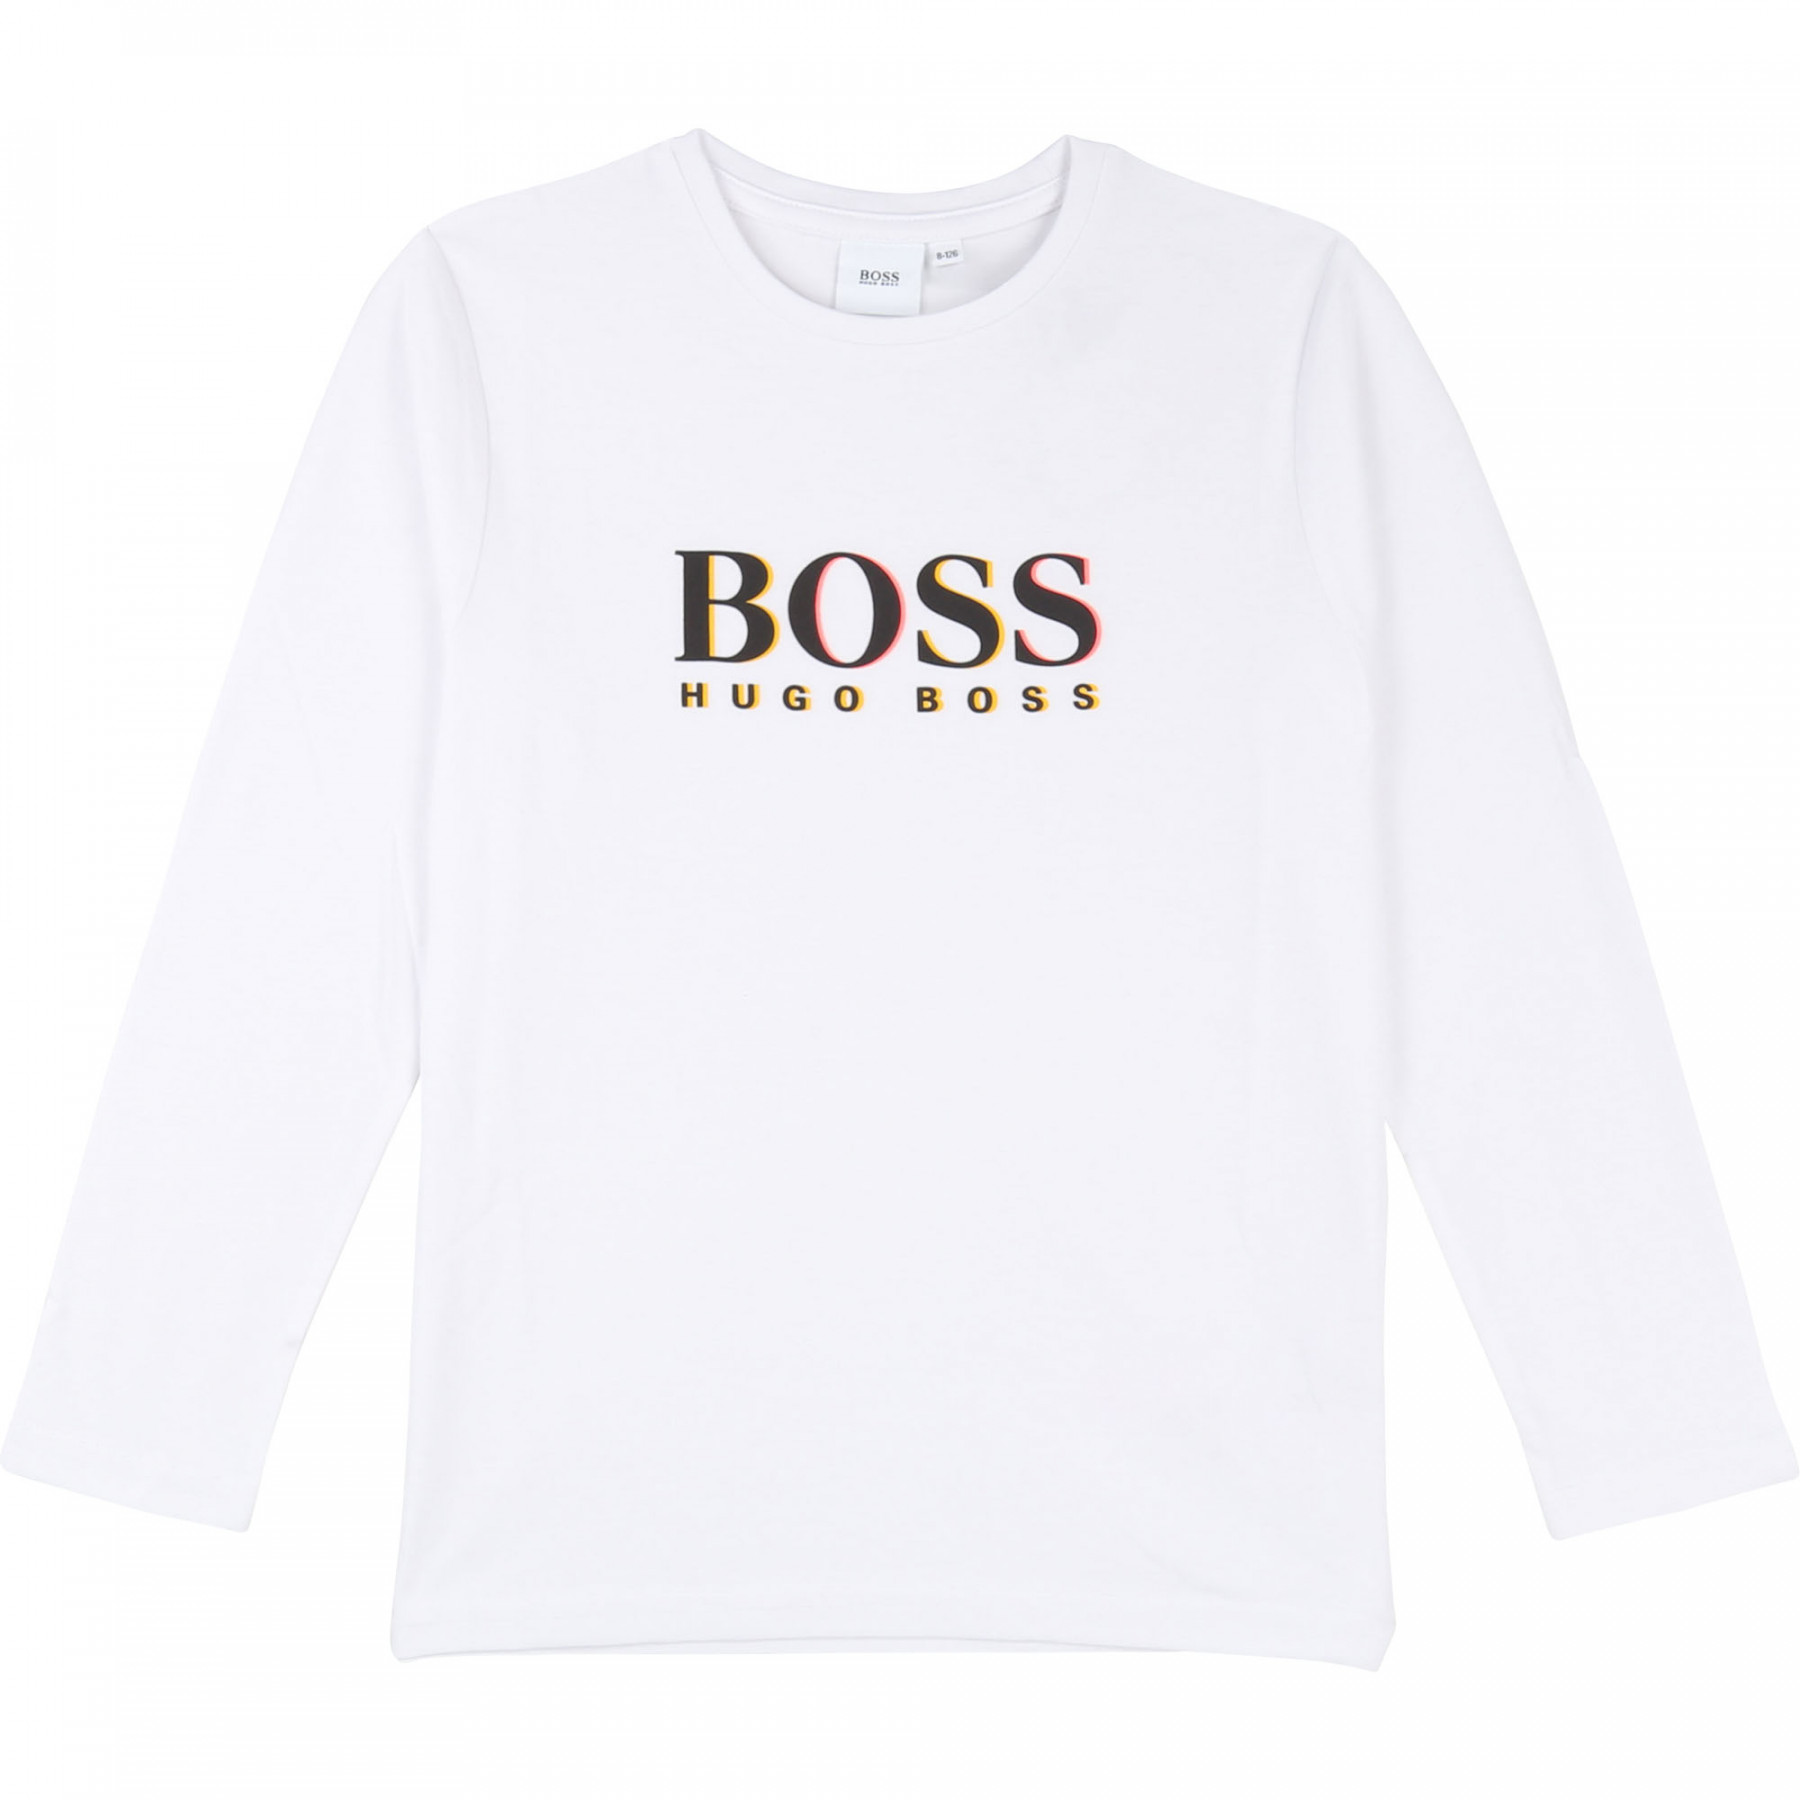 Camiseta Manga Larga HUGO BOSS Blanca